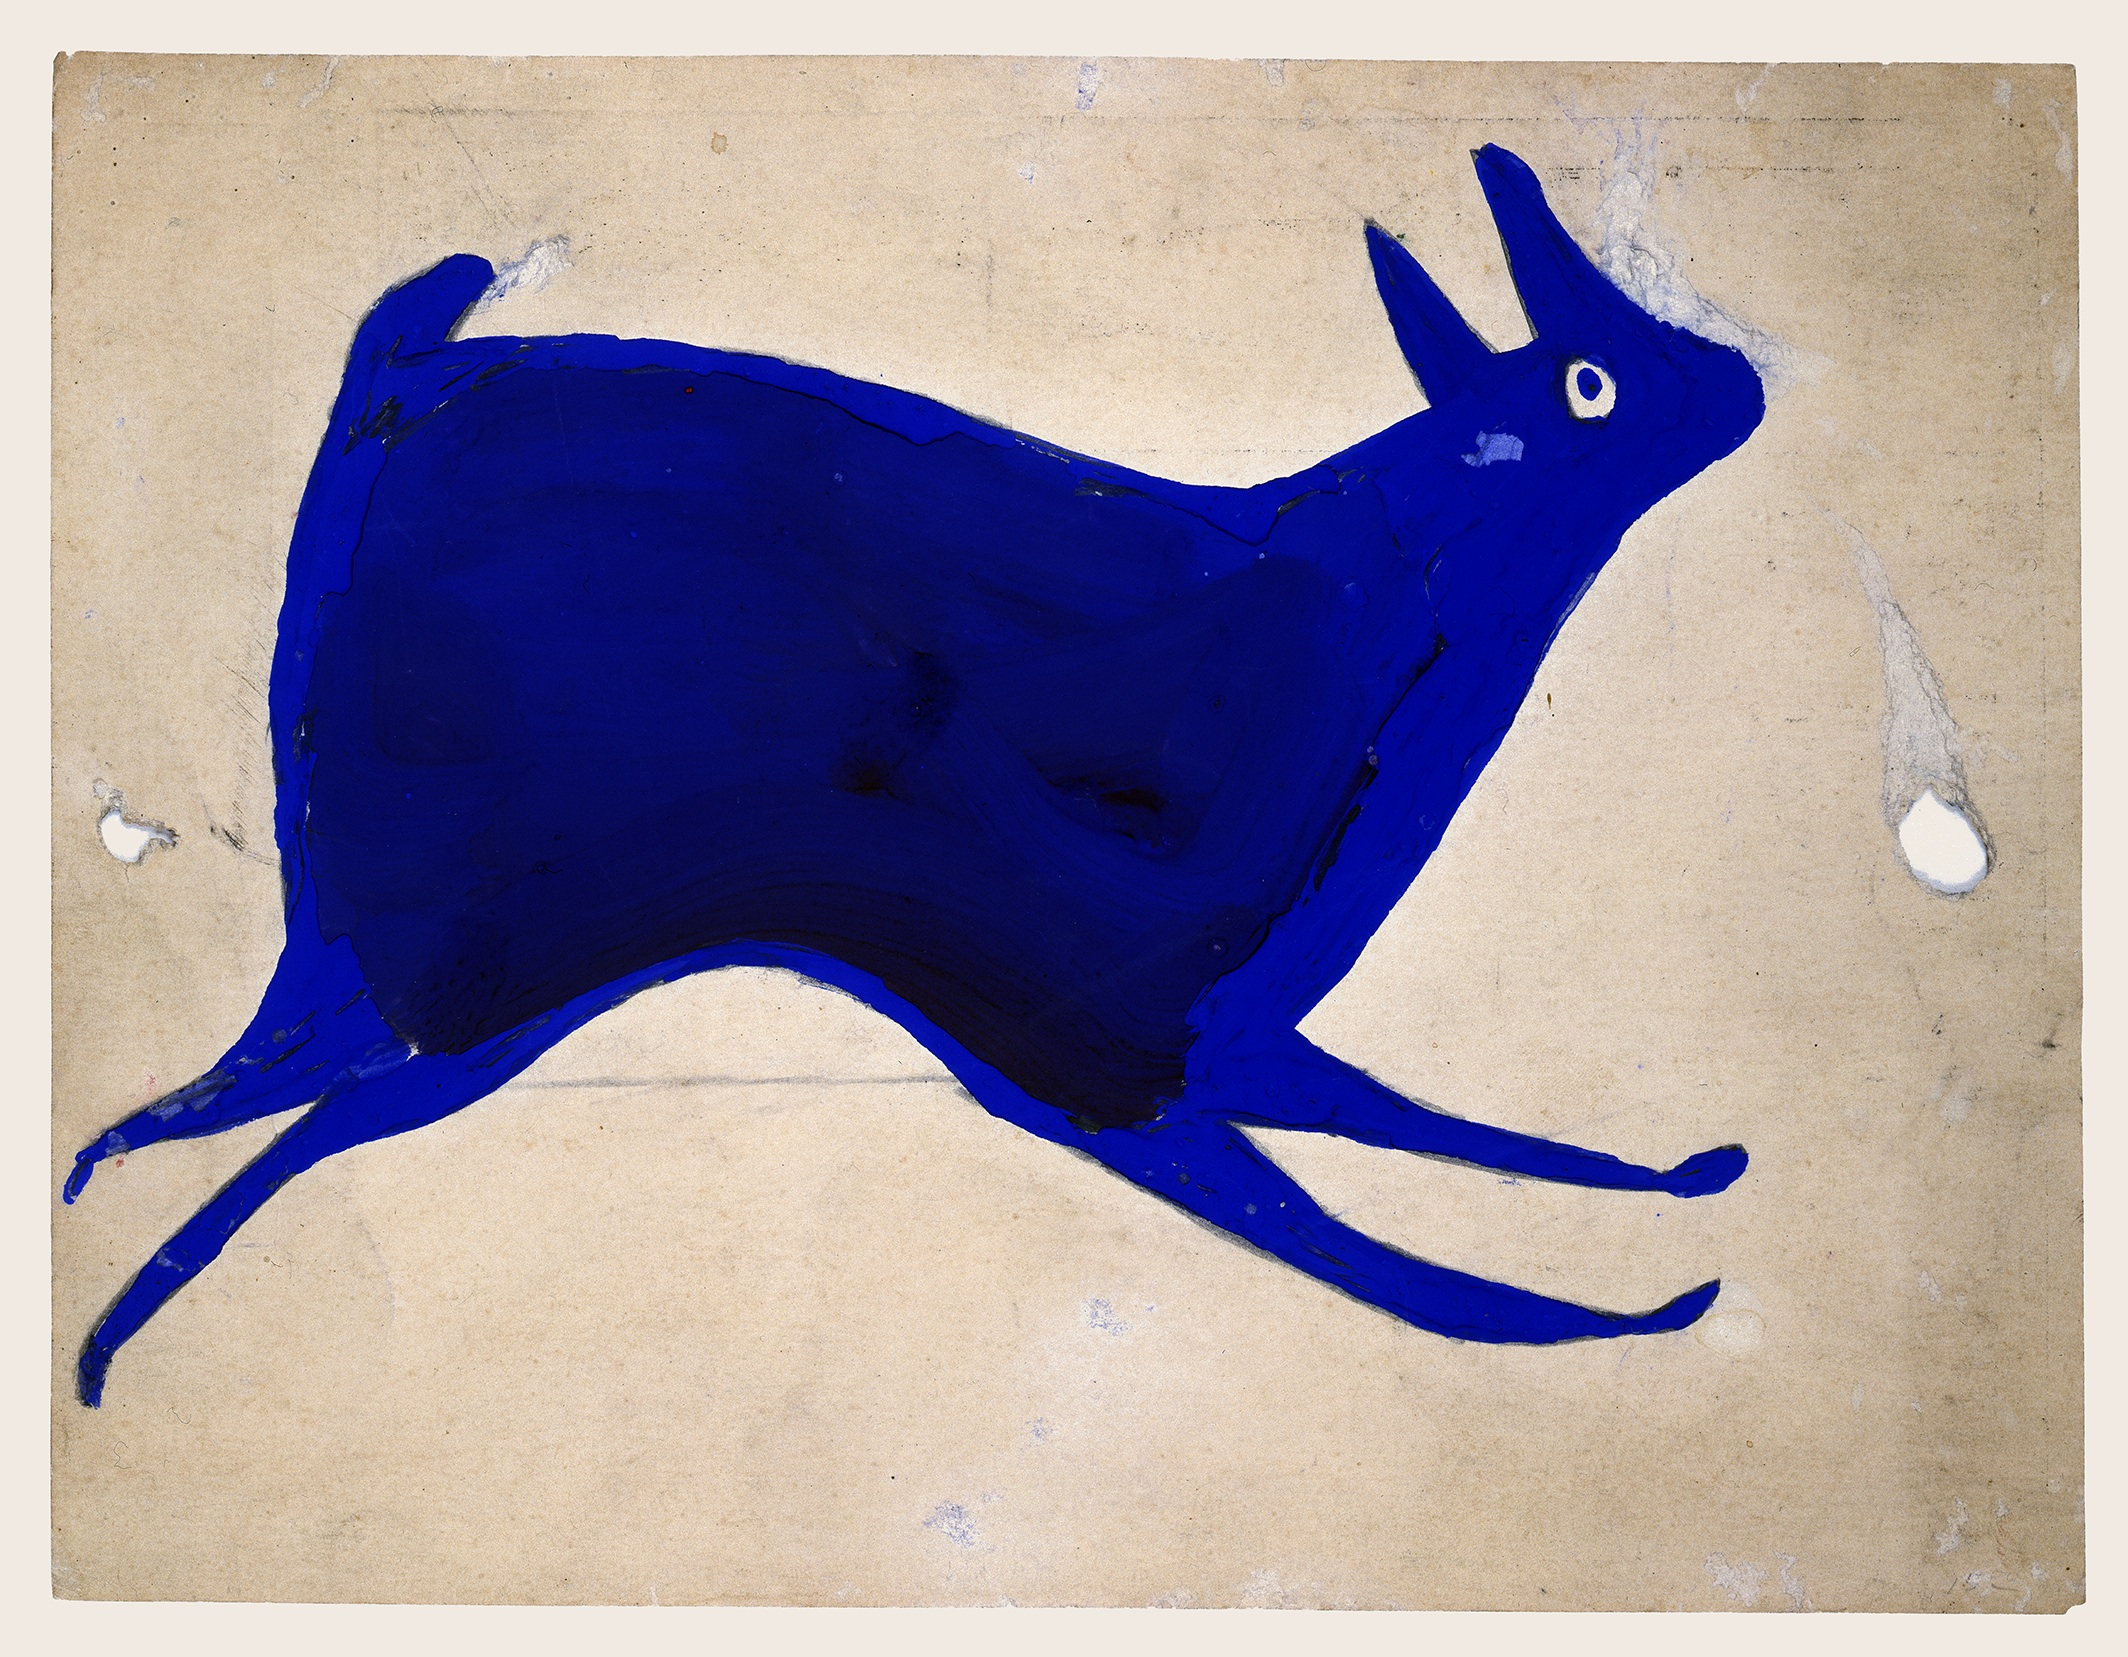 Bill Traylor Blue Rabbit Running, 1939-1942, Poster paint and pencil on cardboard  Louis-Dreyfus family collection